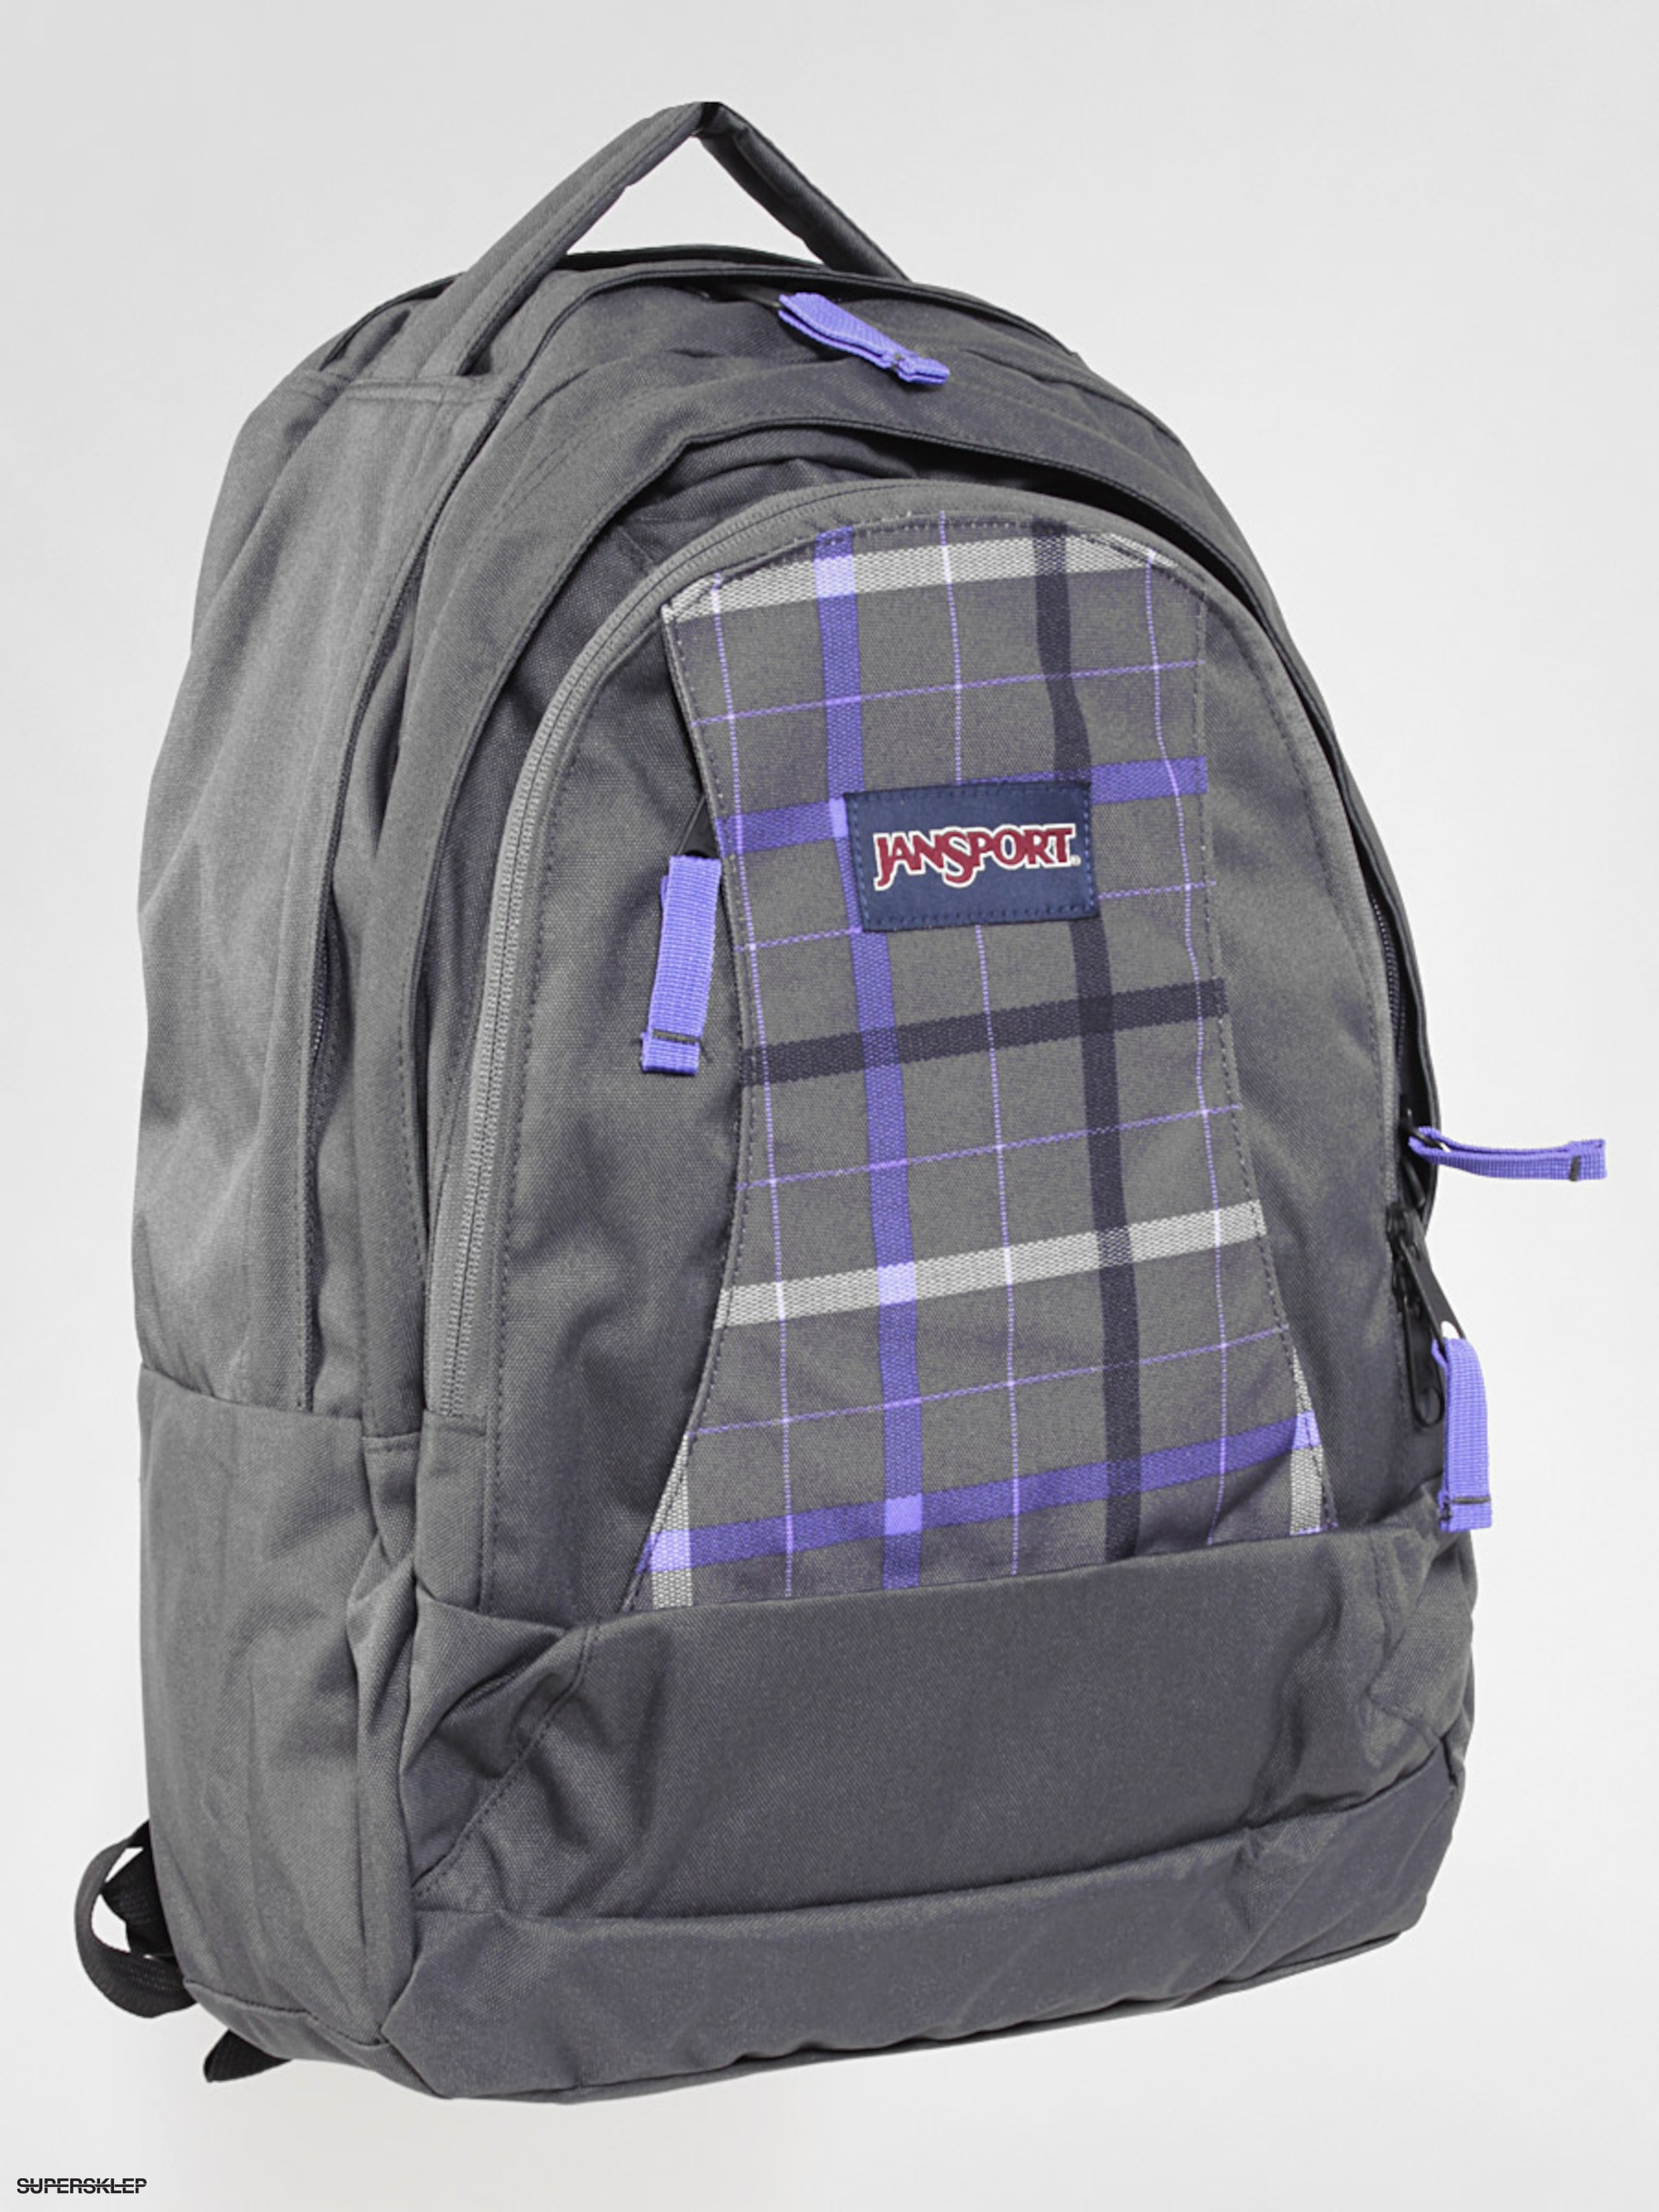 ad25ac6b2e070 Plecak Jansport Essence (forge grey london plaid)